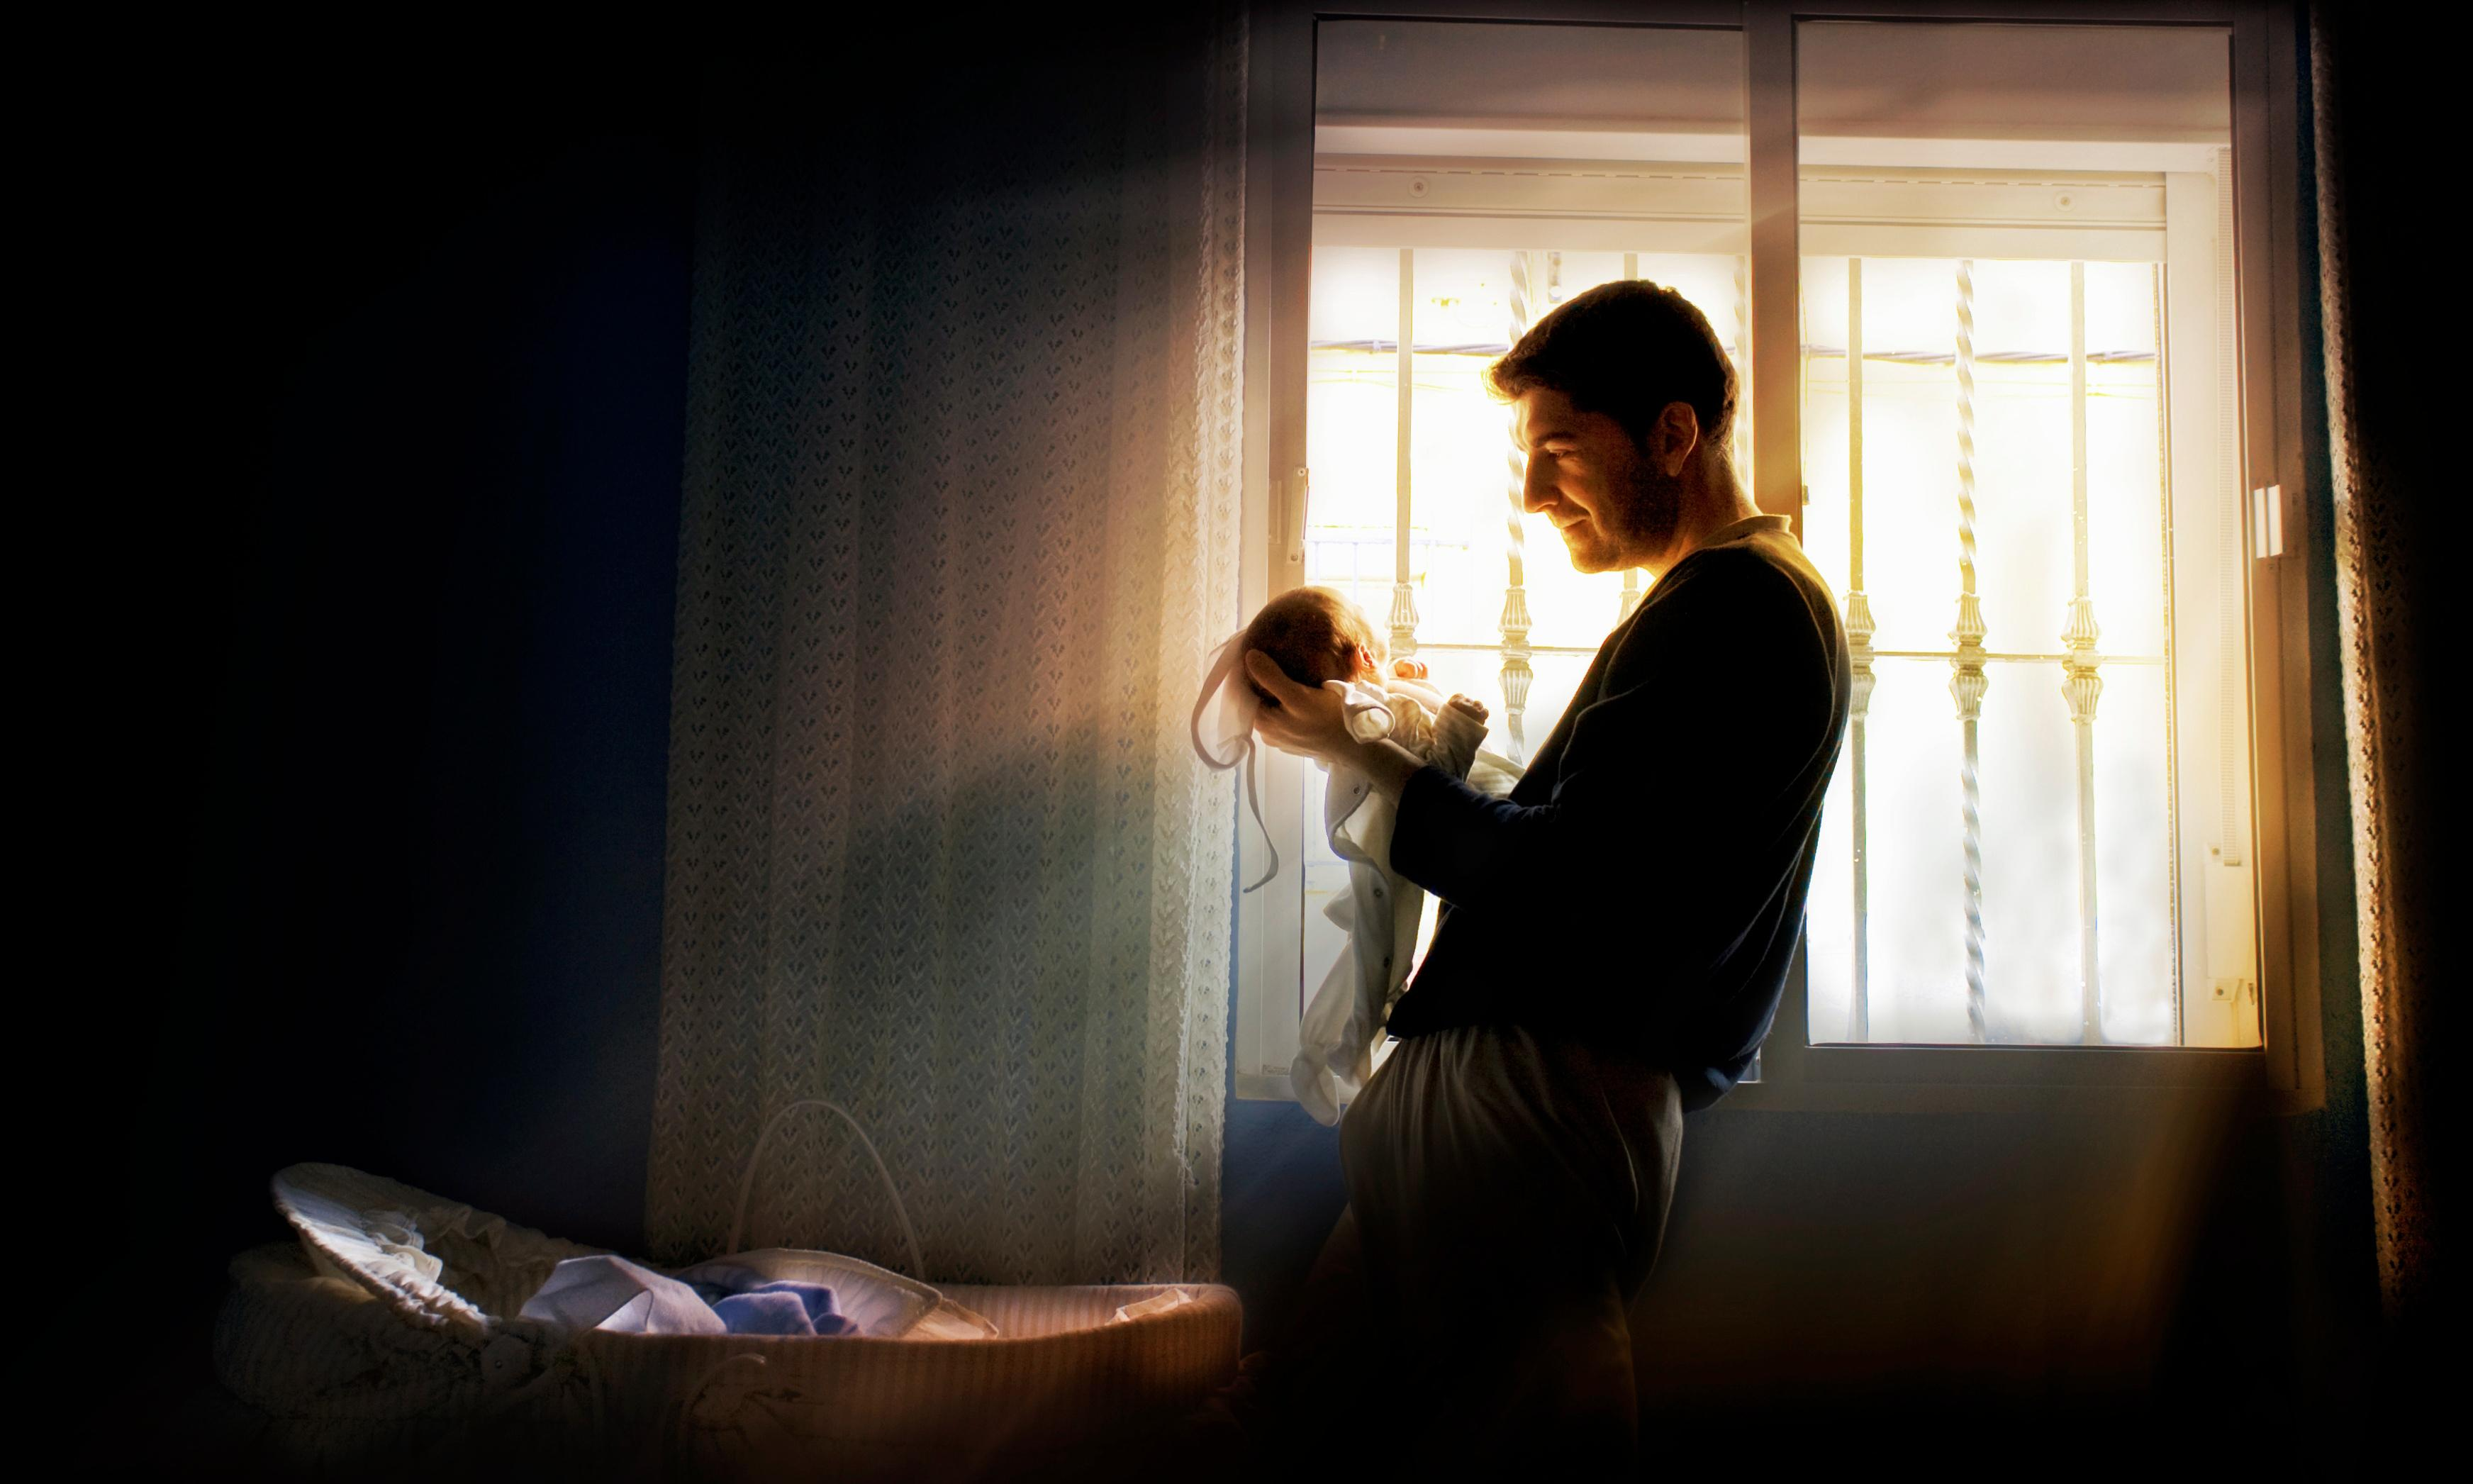 Men who receive paid paternity leave want fewer children, study finds